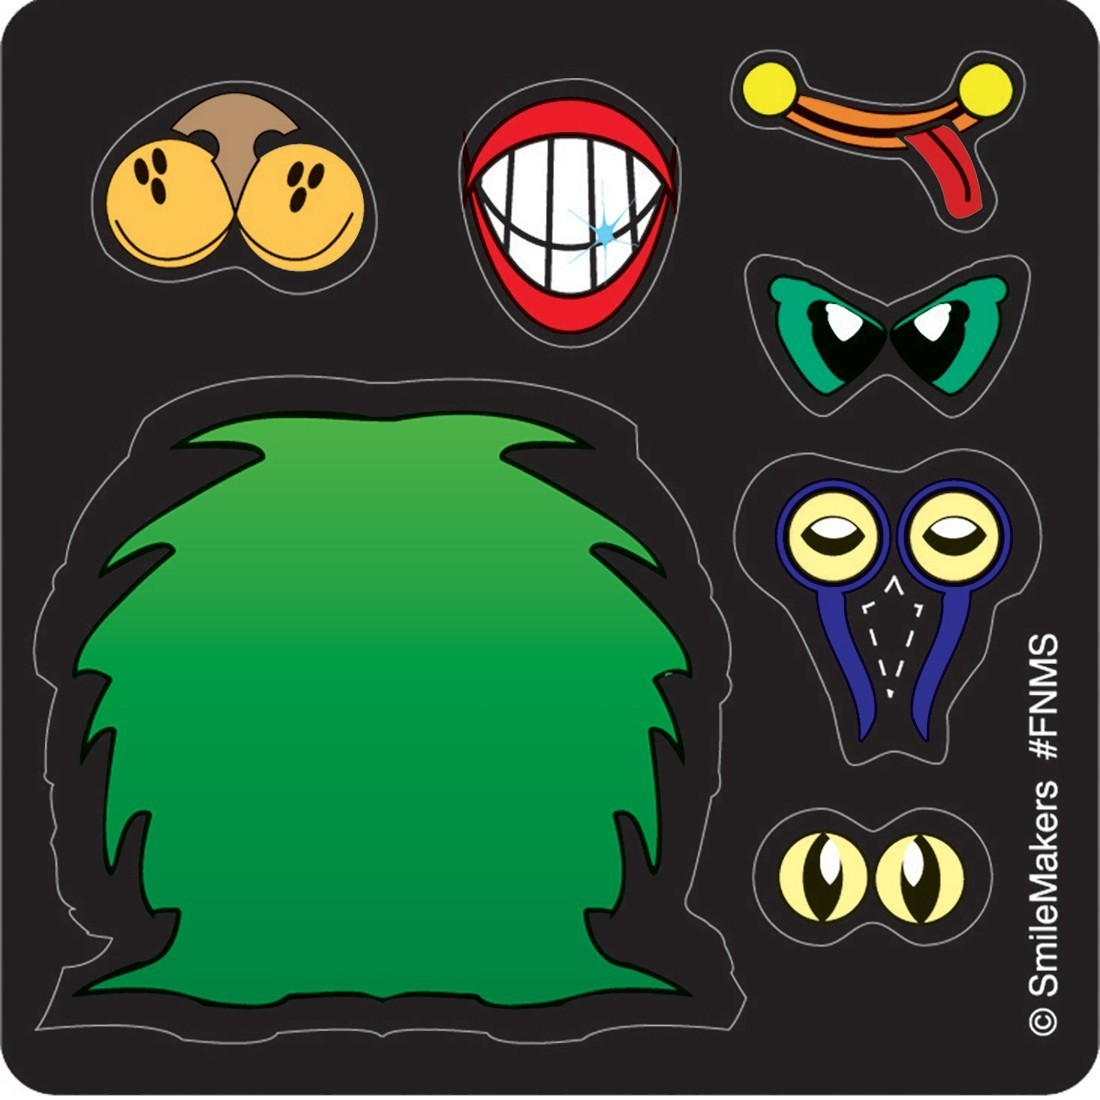 Make Your Own™ Monster Stickers               [image]